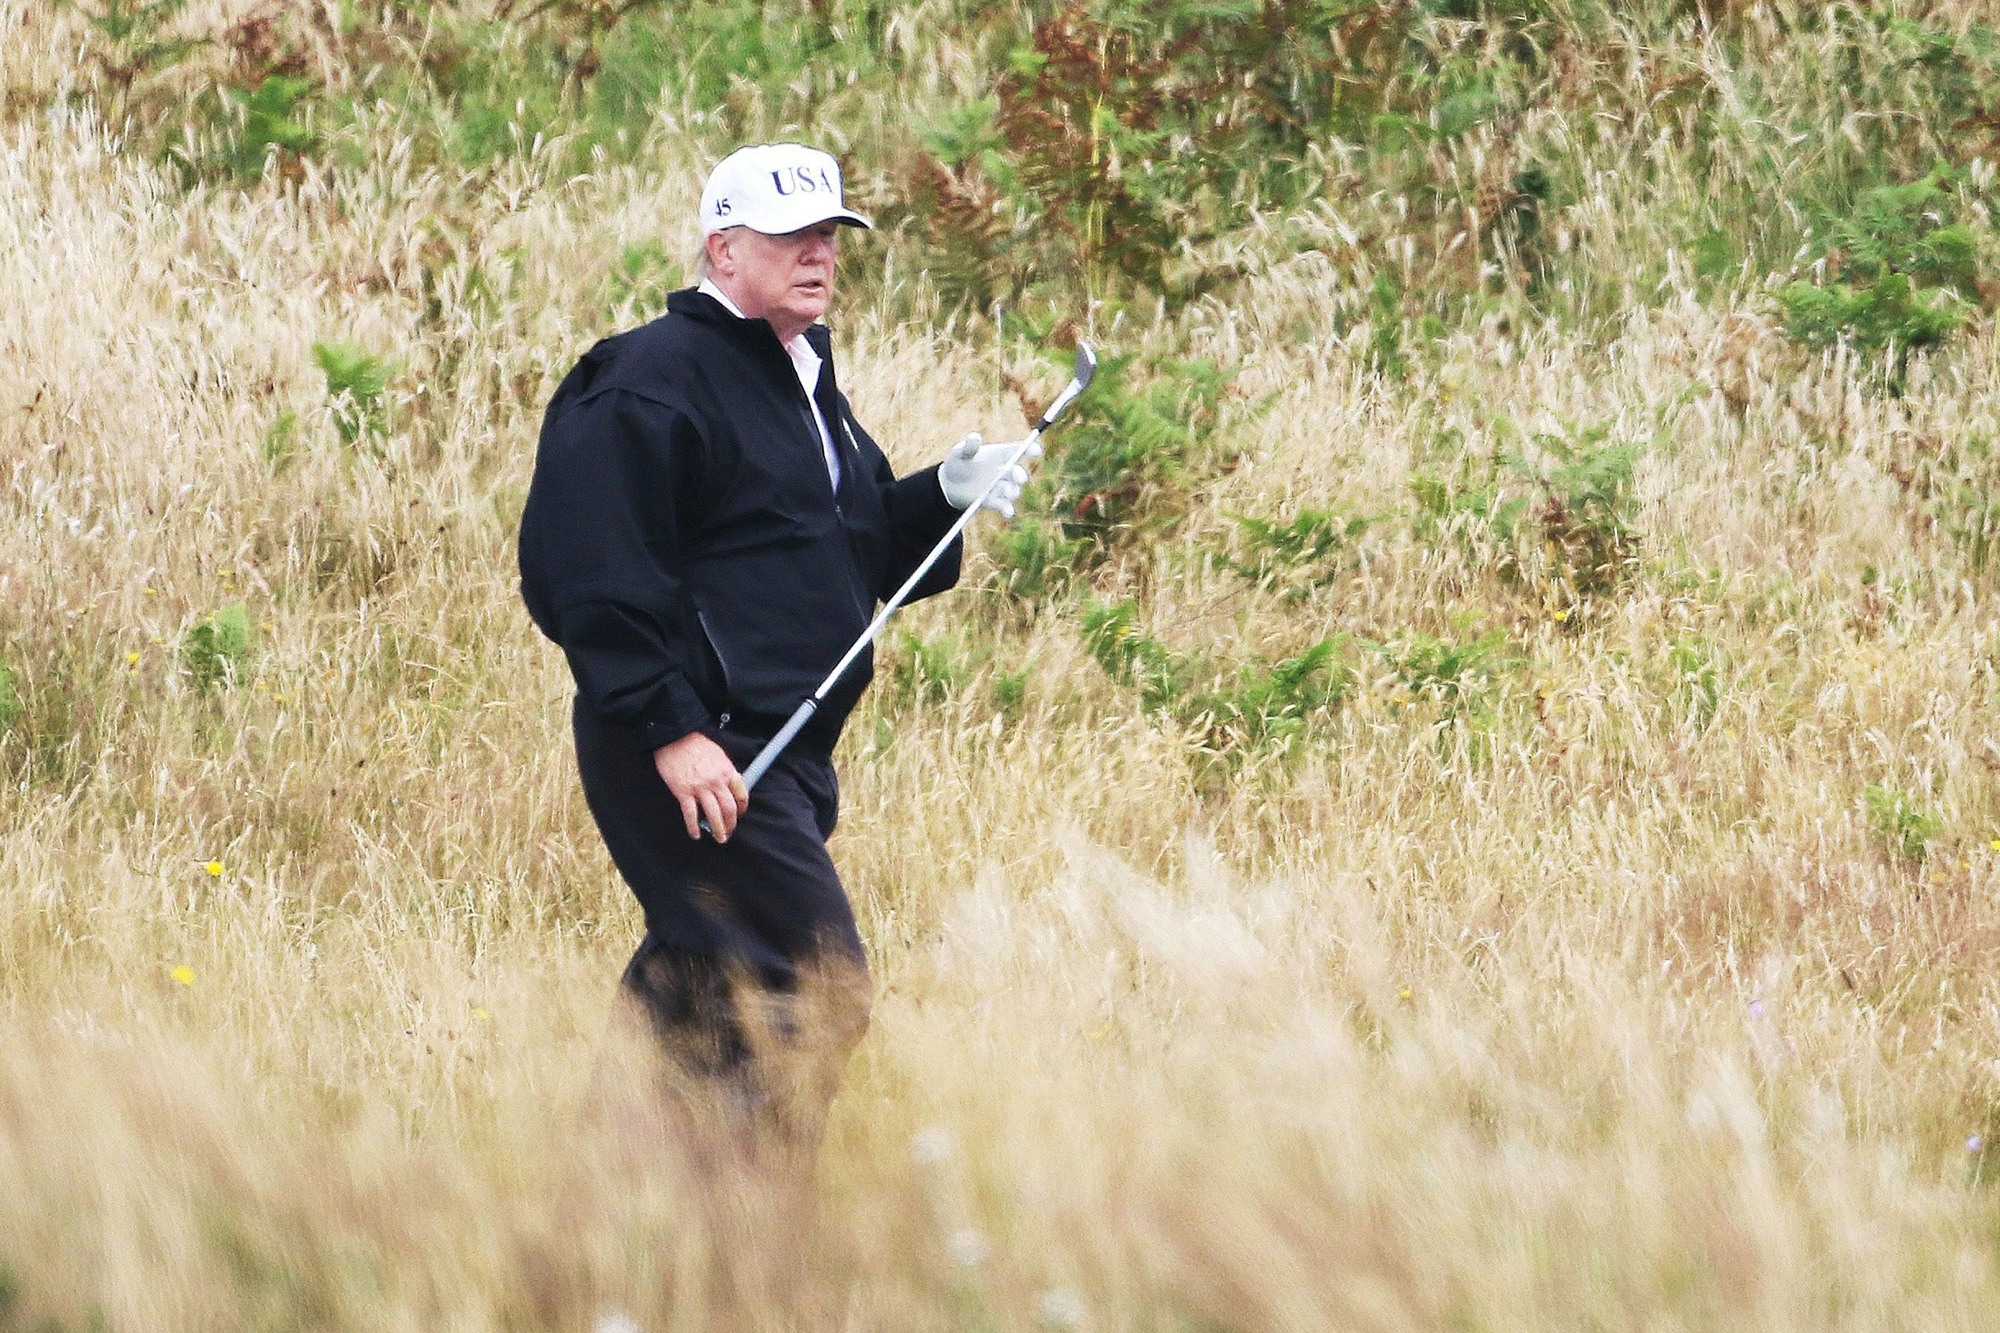 Donald Trump plays golf